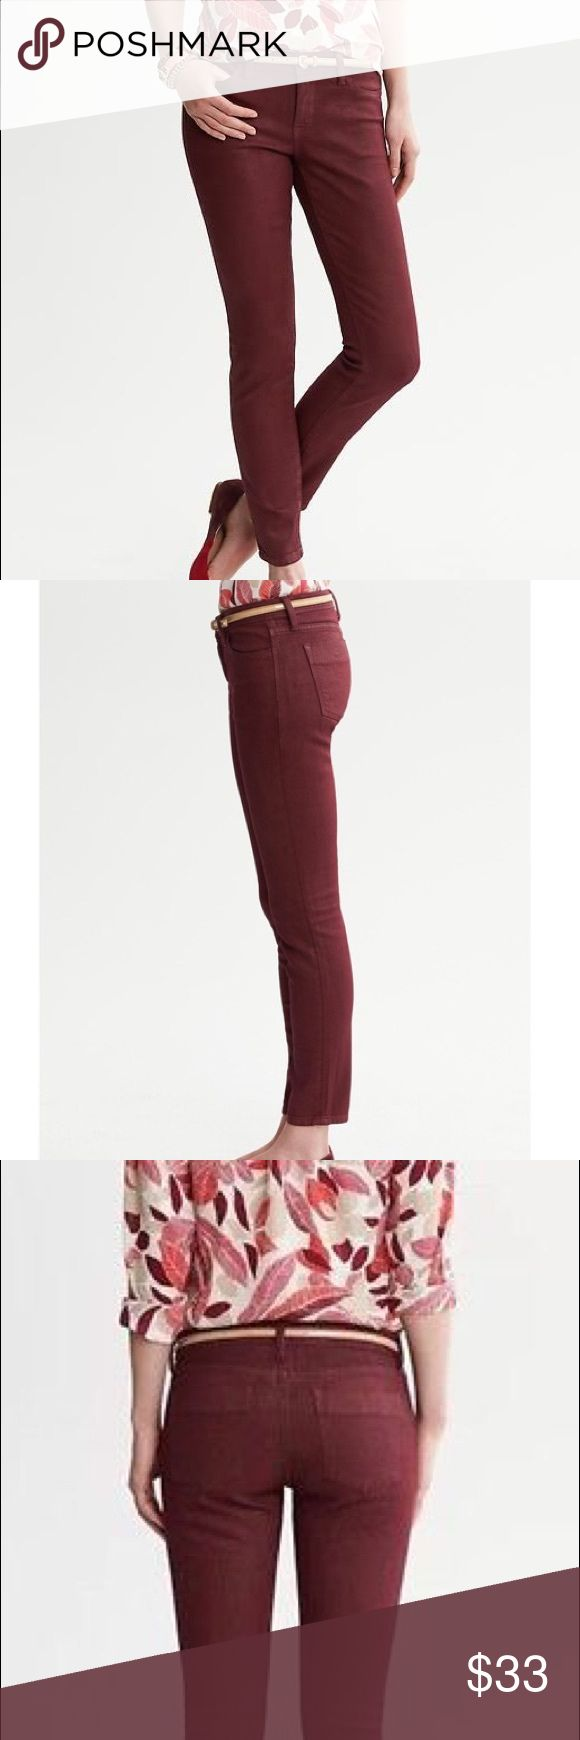 Banana Republic Oxblood Coated Ankle Jeans Banana Republic coated denim gives a subtle sheen to this classic silhouette. Zip fly with button closure. Belt loops. Traditional five pocket styling. Low rise. Slim through the hip and thigh. Ankle length. 99% cotton and 1% elastane. In excellent used condition. 🚫NO TRADES🚫 Banana Republic Jeans Ankle & Cropped